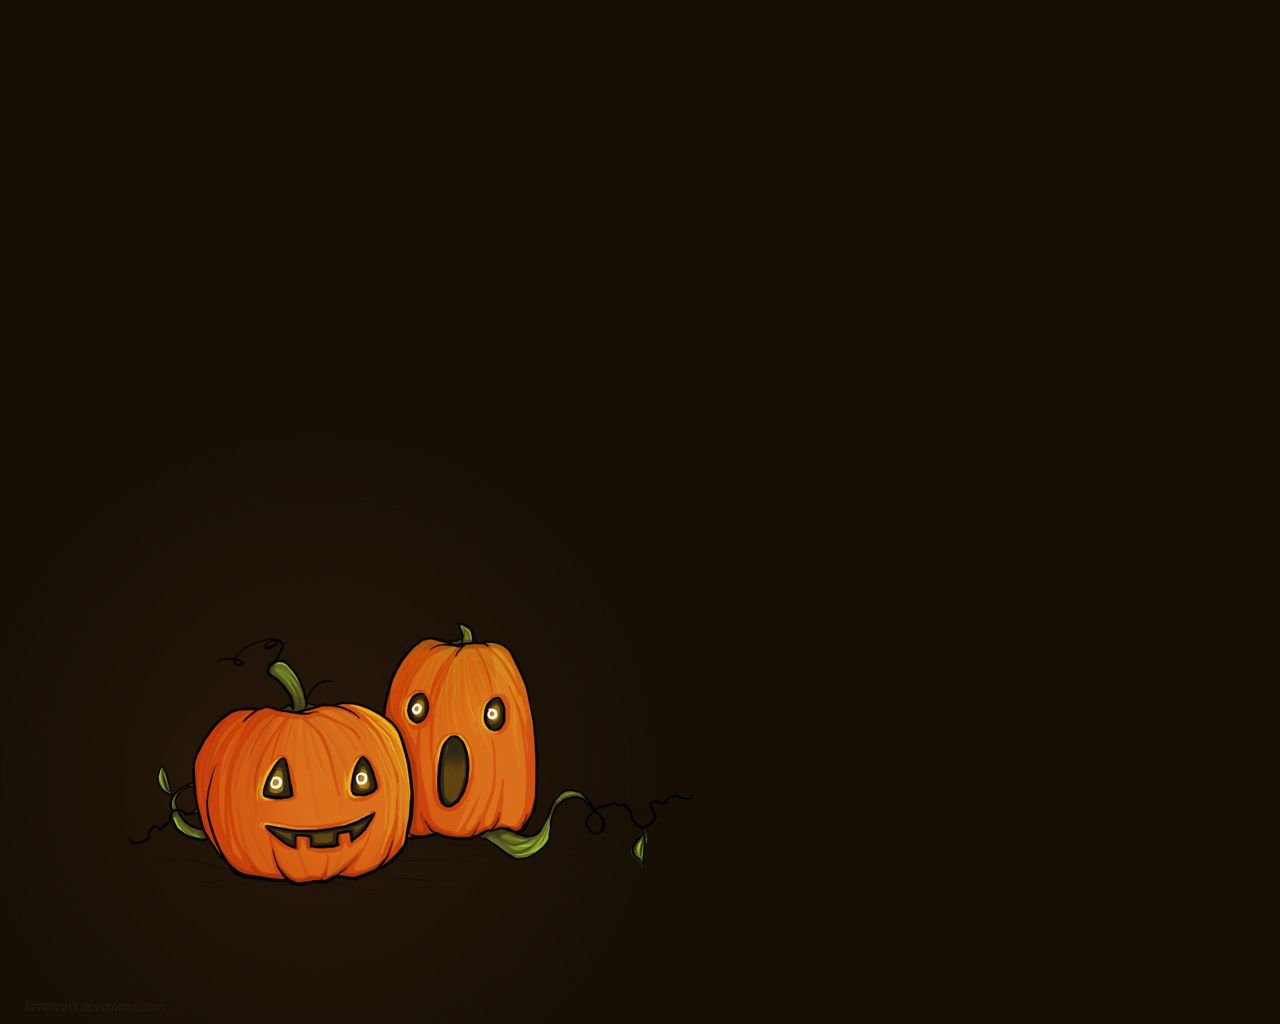 Cute Halloween Desktop Backgrounds Images Pictures Becuo With